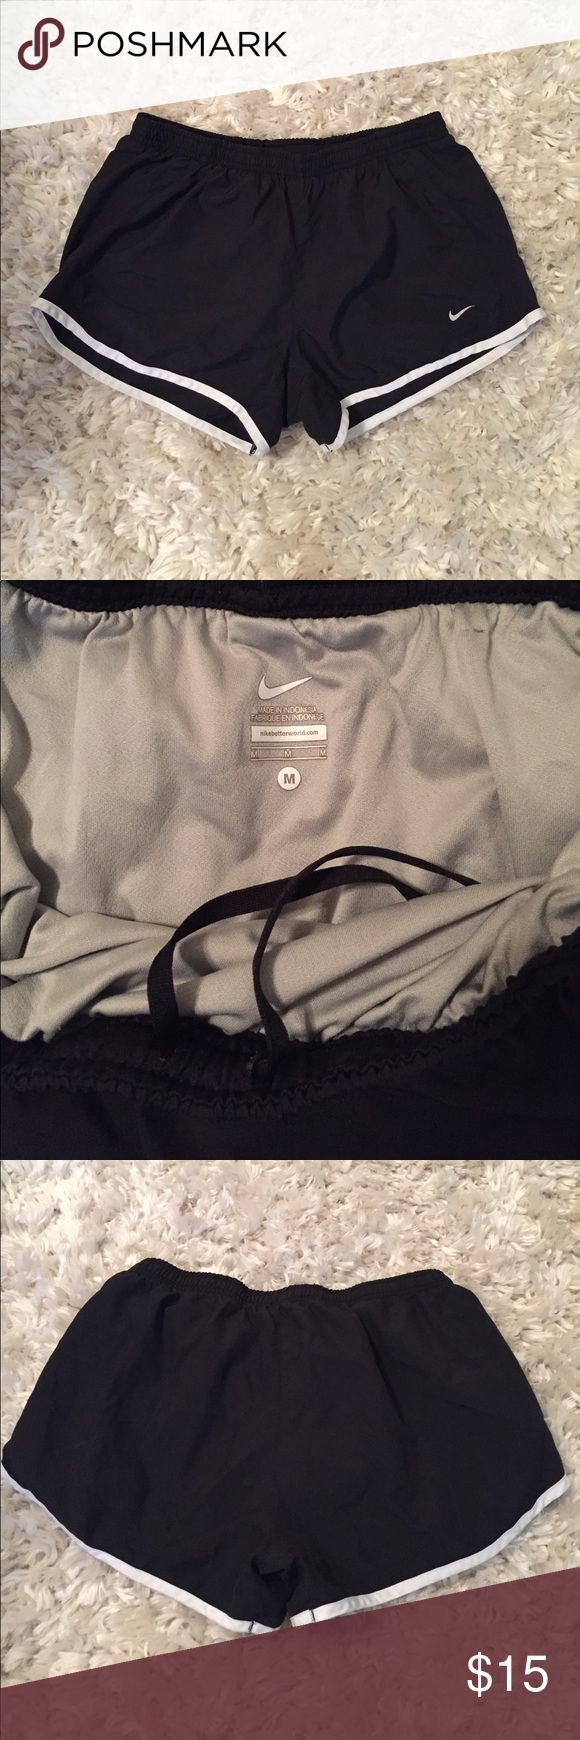 Medium black Nike shorts Medium black Nike shorts with adjustable string in the front to make the shorts tighter or looser. Have been worn but are in great condition. Nike Shorts